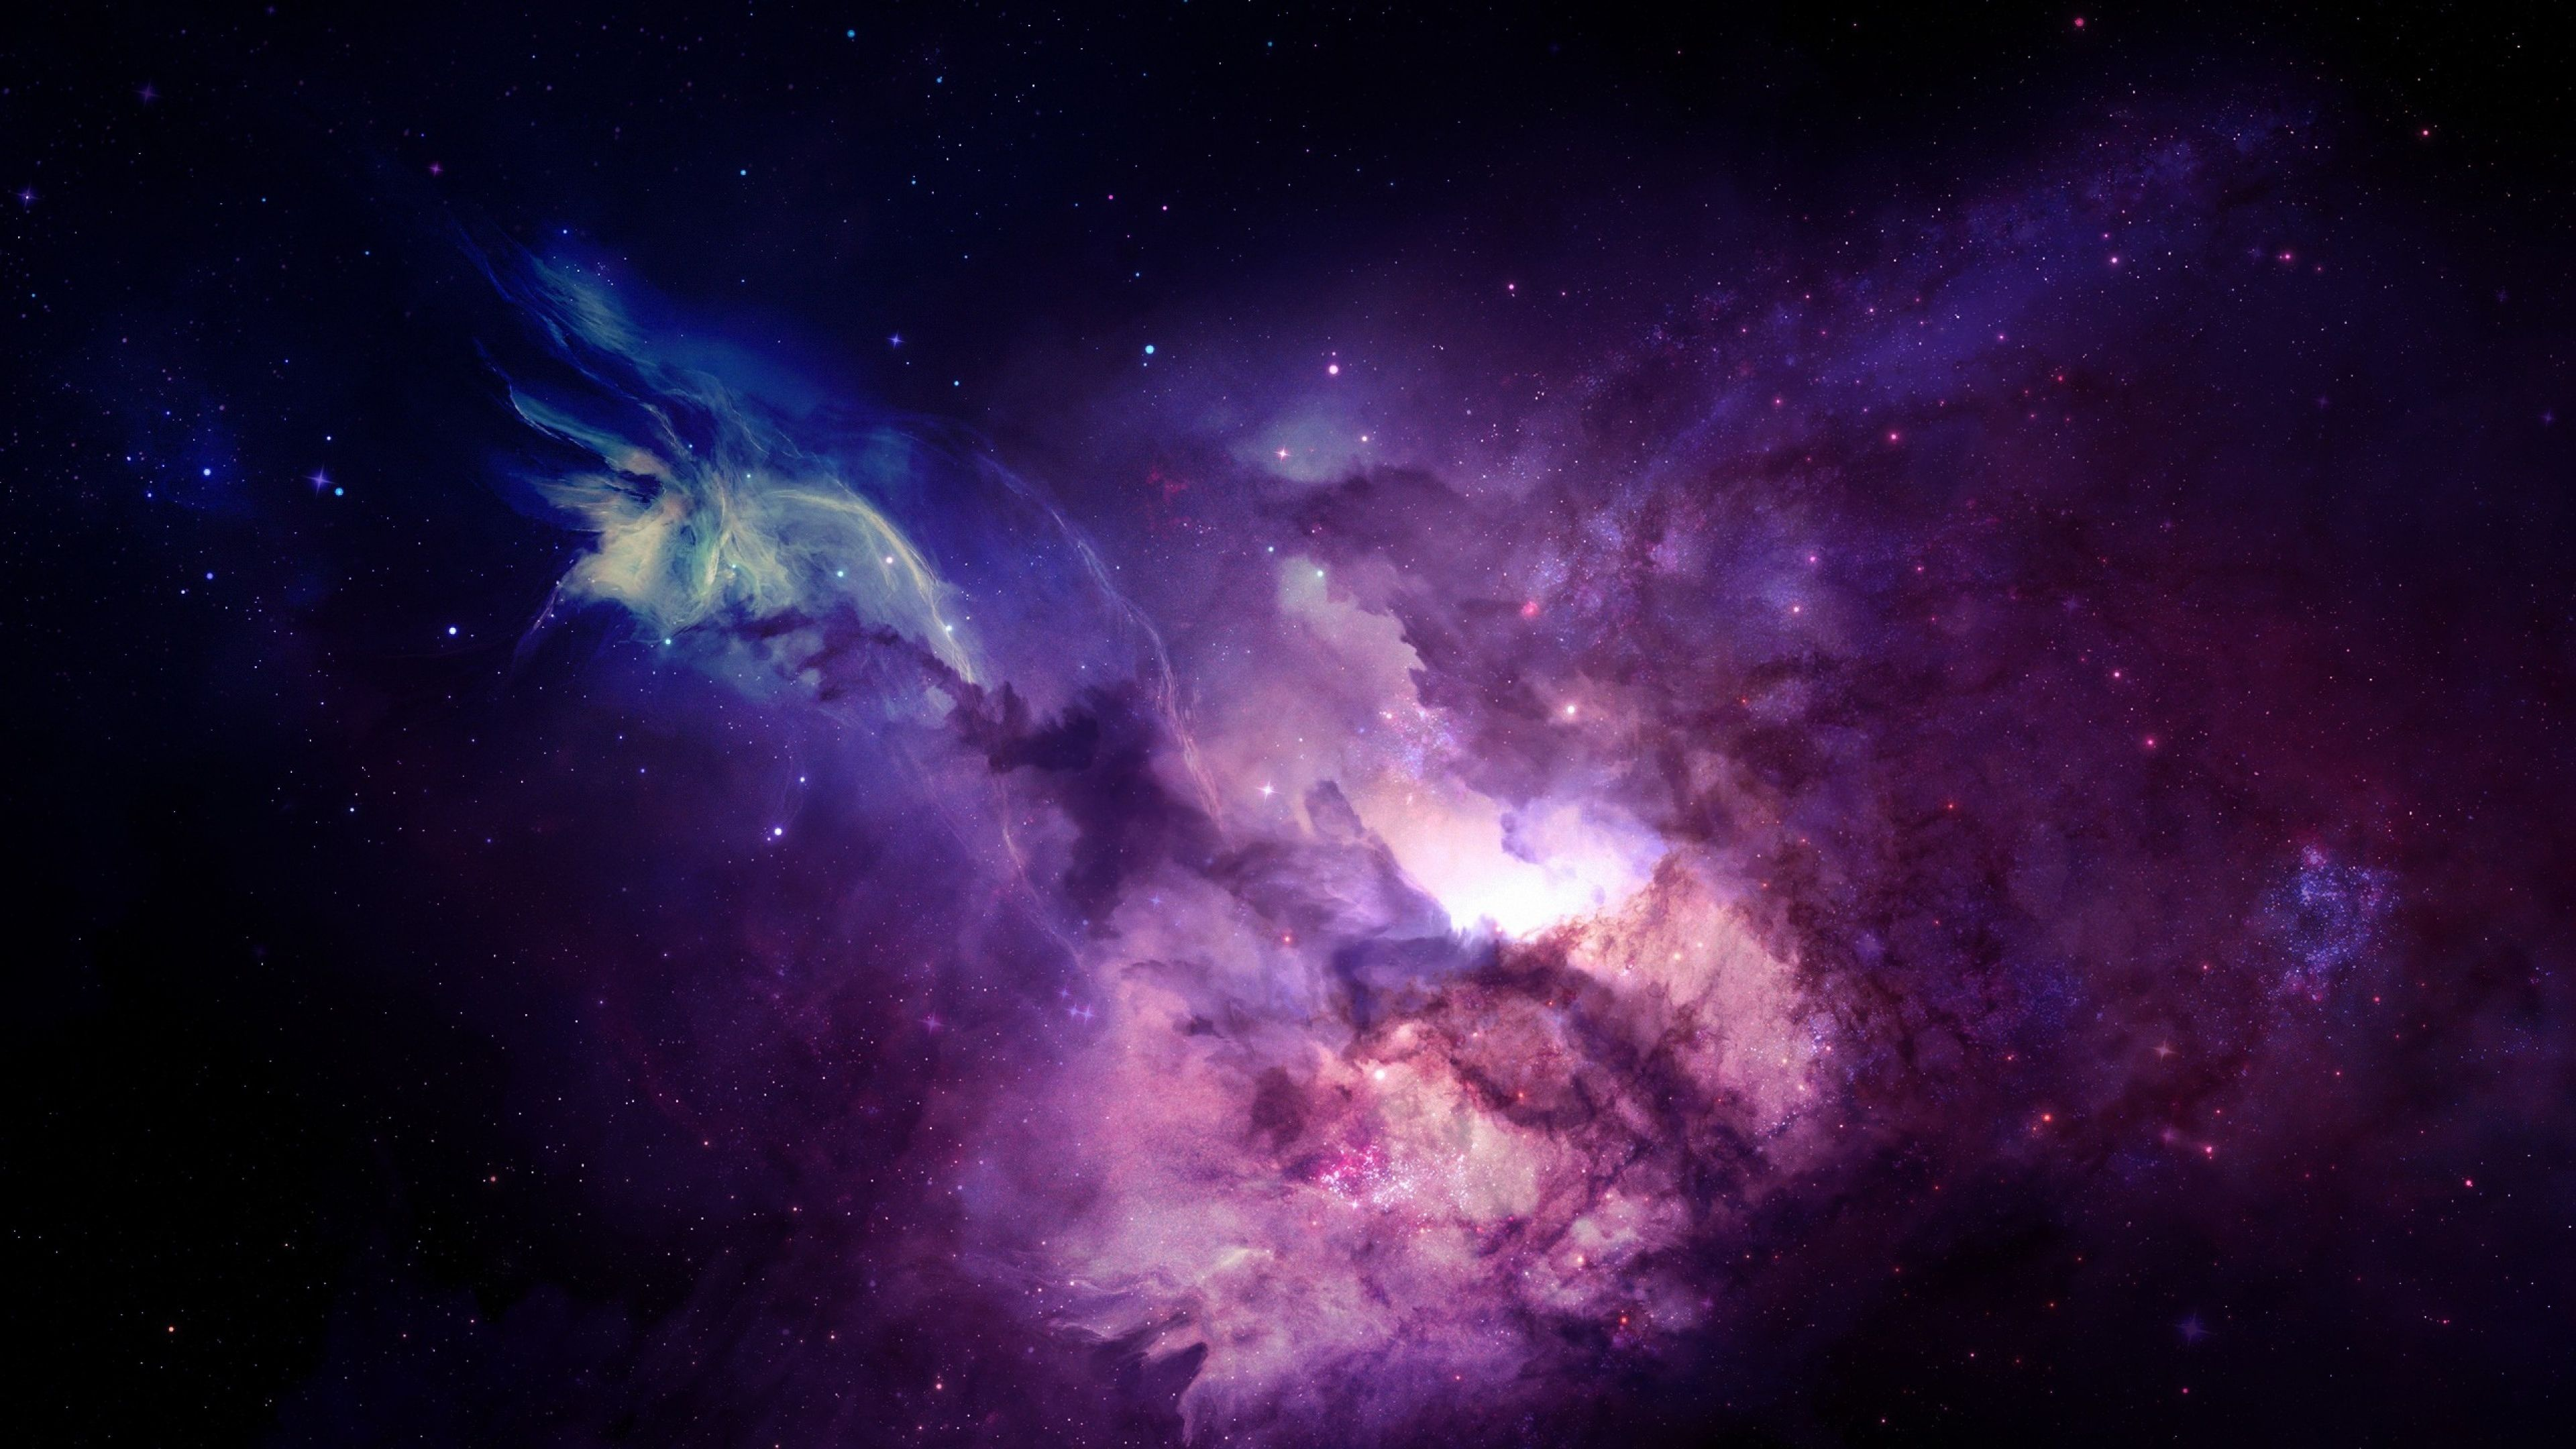 4k Space Wallpaper for Pinterest Wallpaper space, Galaxy